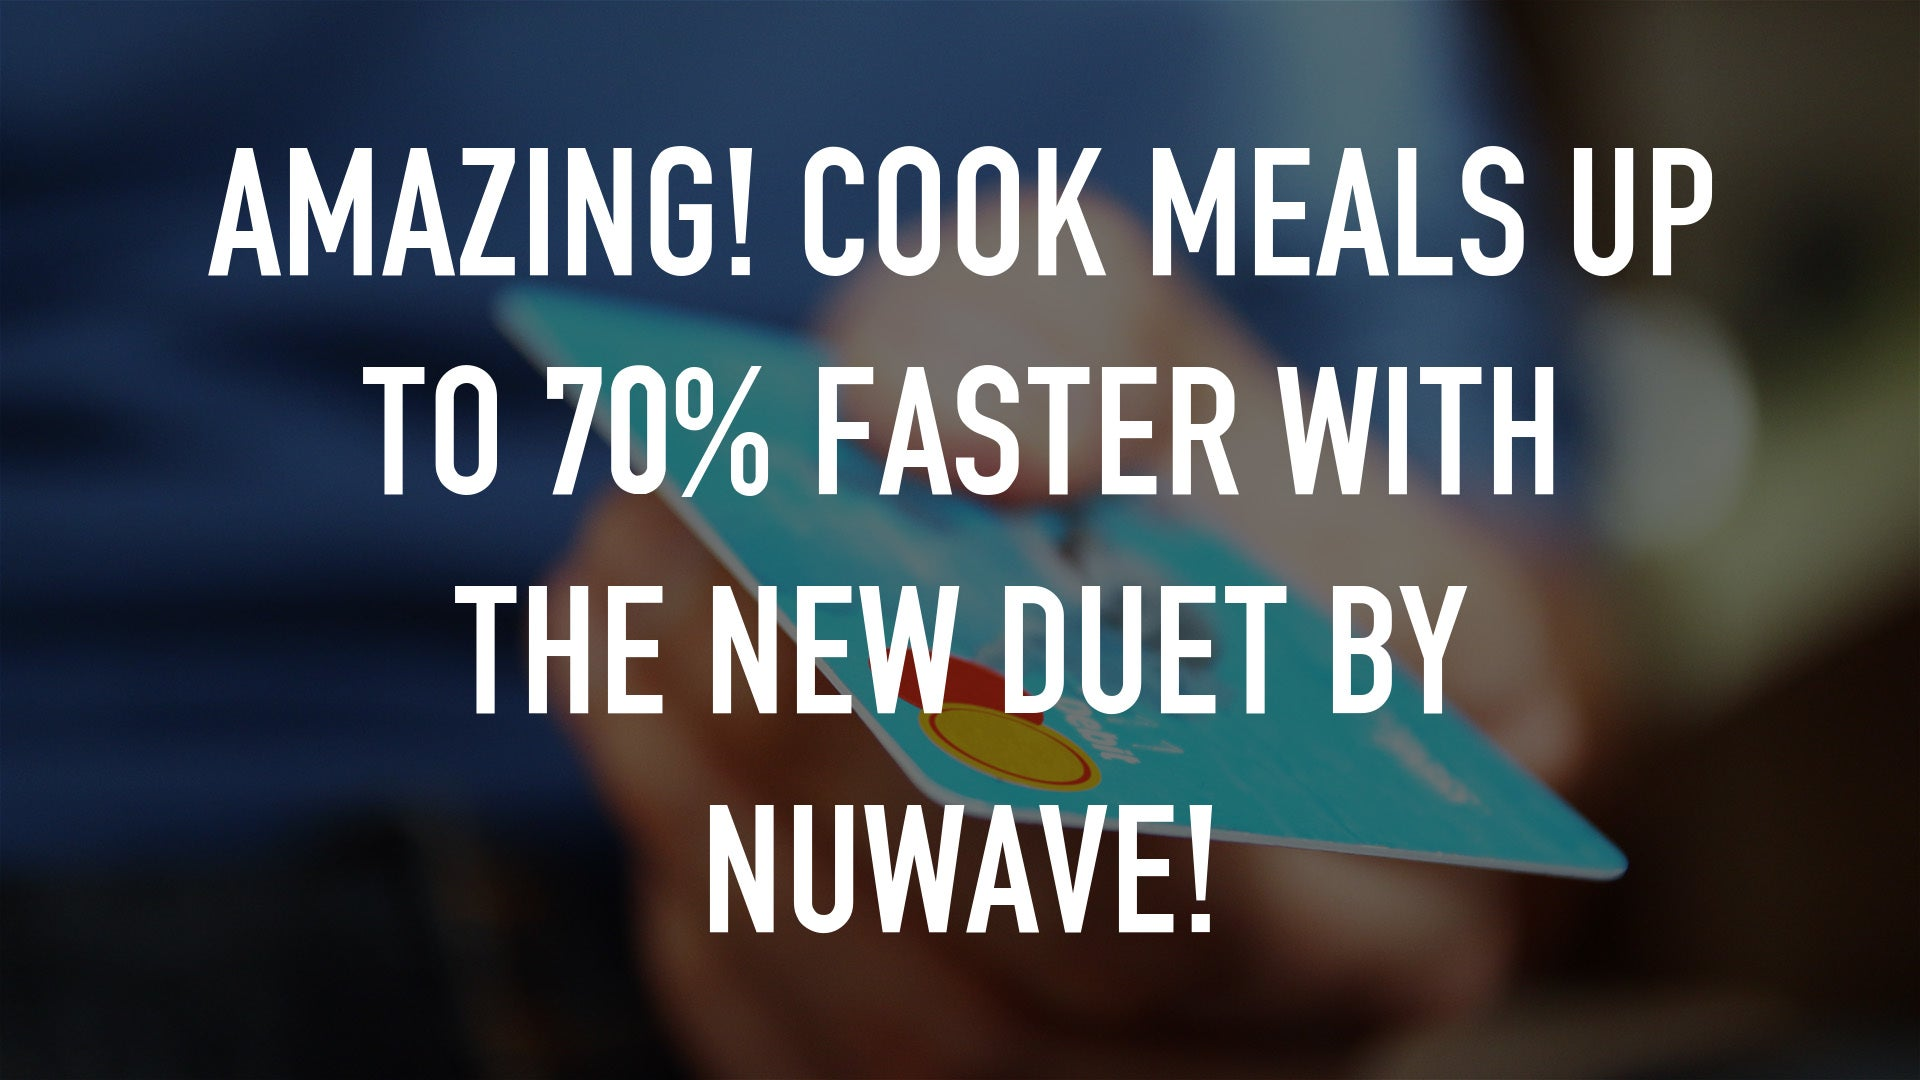 Amazing! Cook Meals up to 70% Faster with the New Duet by NuWave!